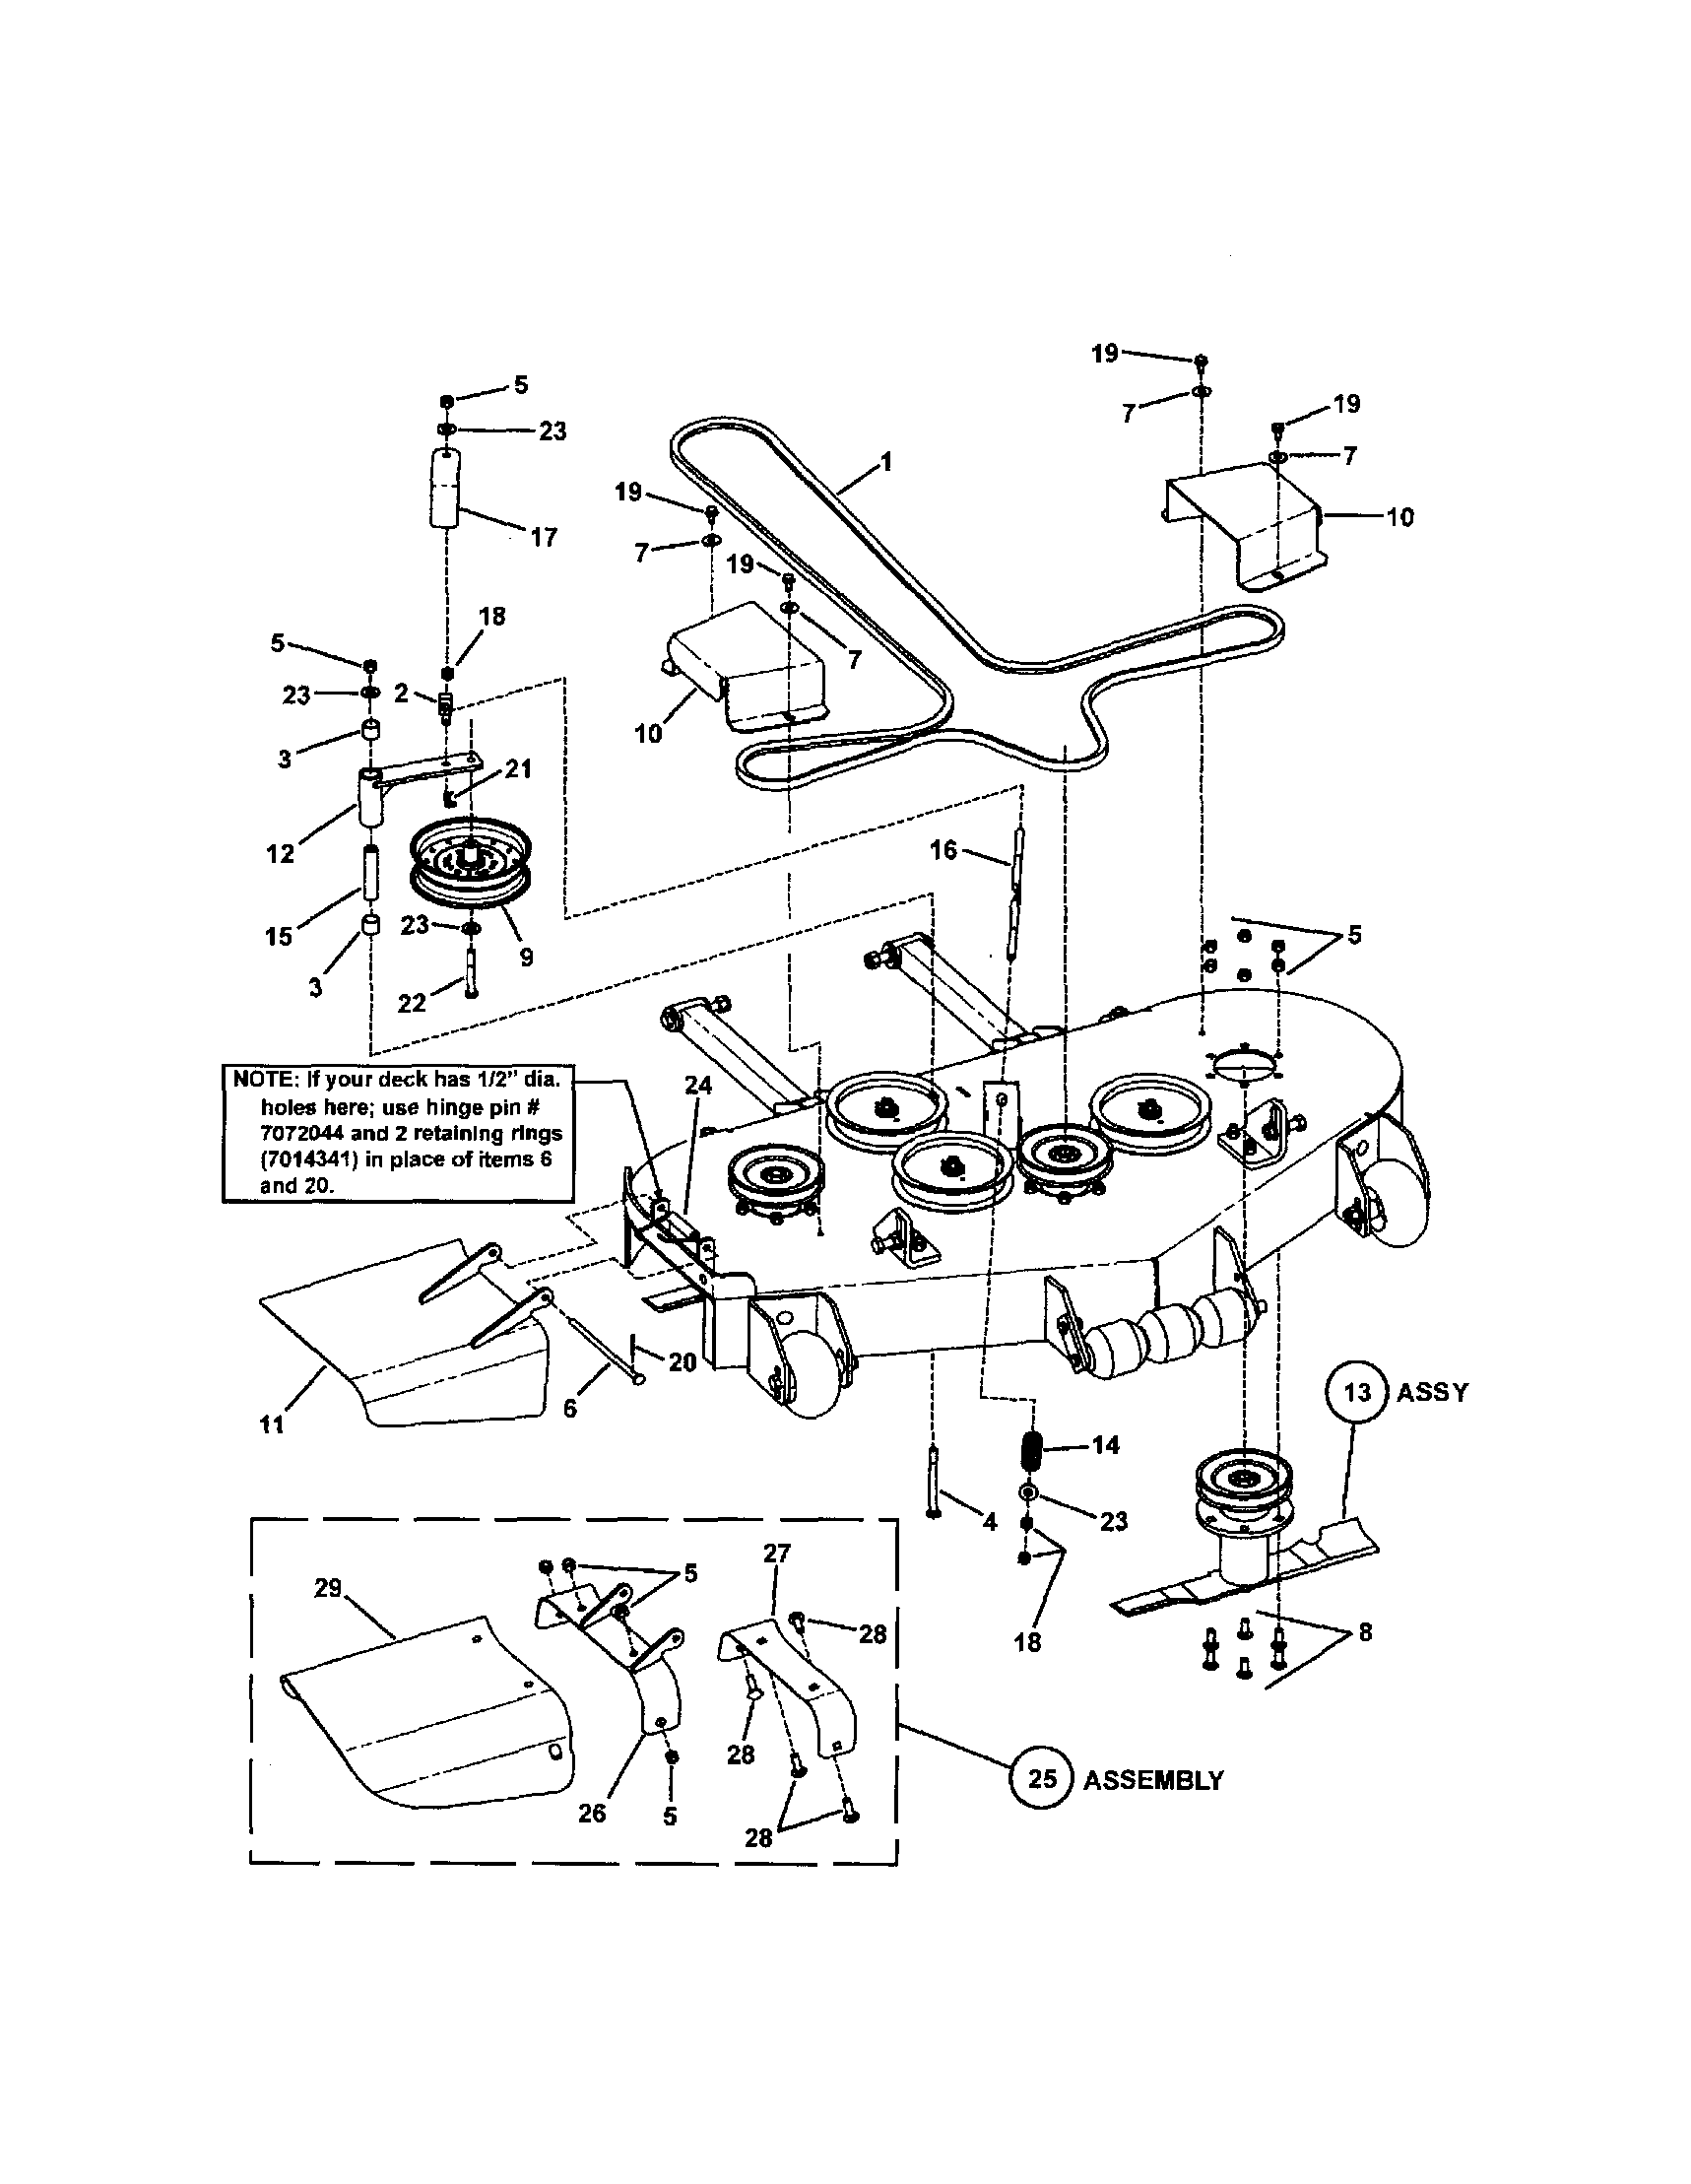 Zero Turn Mower Drawing At Free For Personal Use Kubota Diesel Engine Parts Diagram 1717x2217 Snapper Model Czt19480kwv Sears Partsdirect